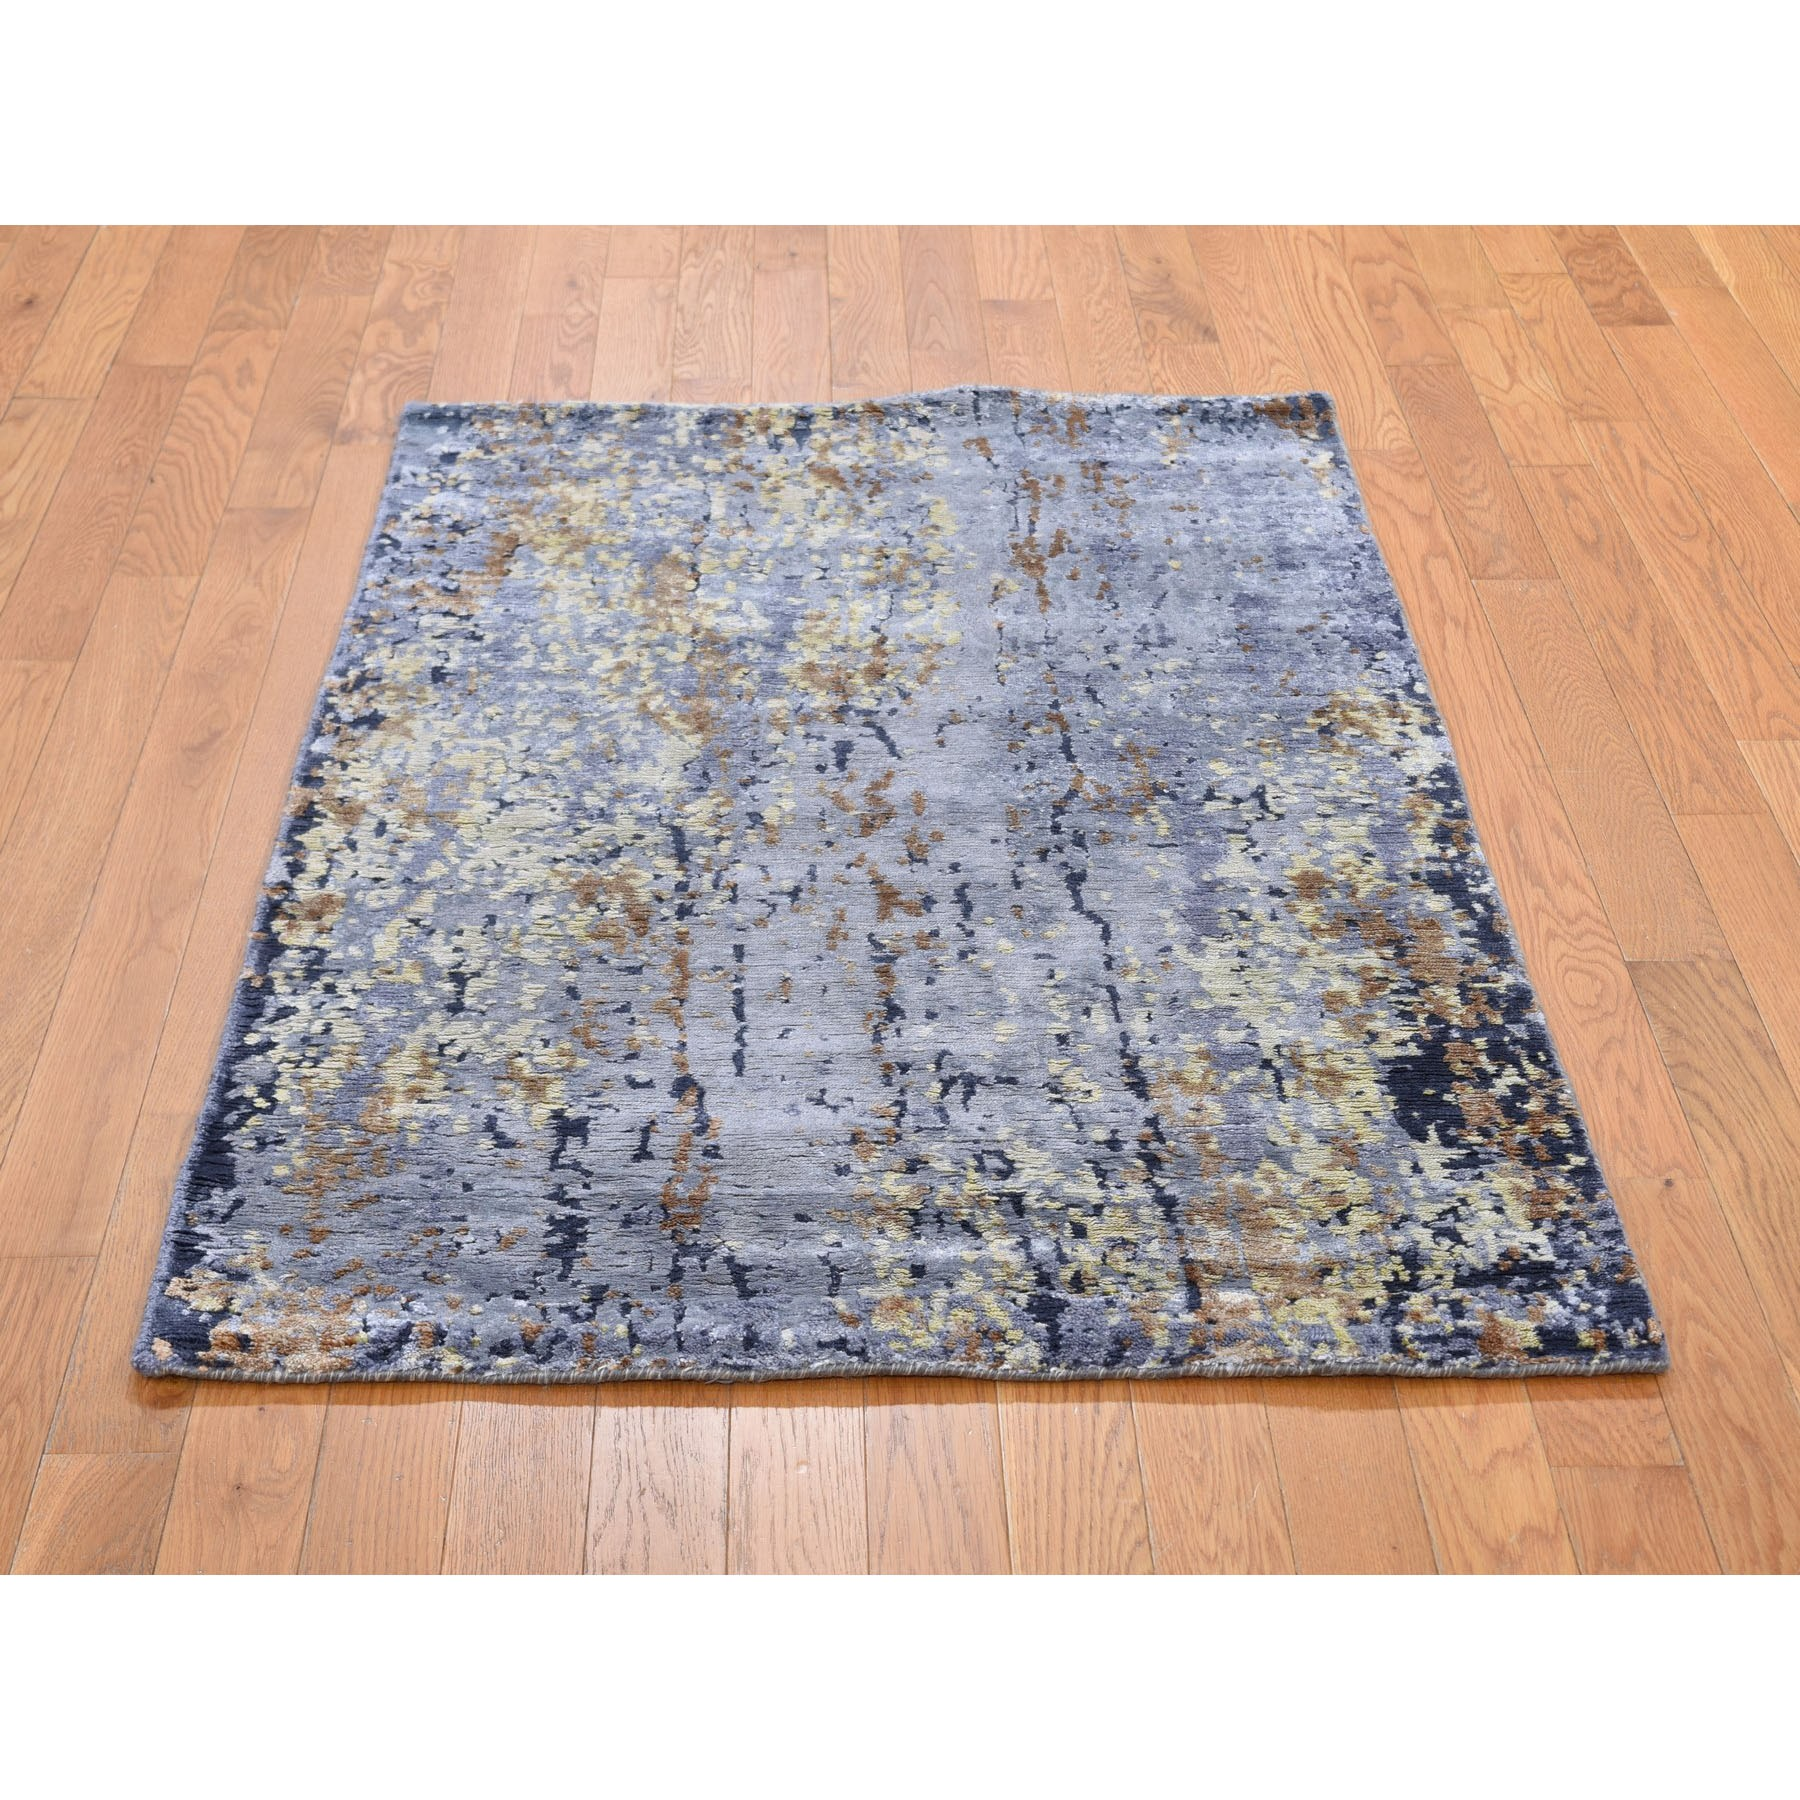 "3'1""x4'9"" Gray Abstract Design Wool and Silk Hi-Low Pile Hand Knotted Oriental Rug"